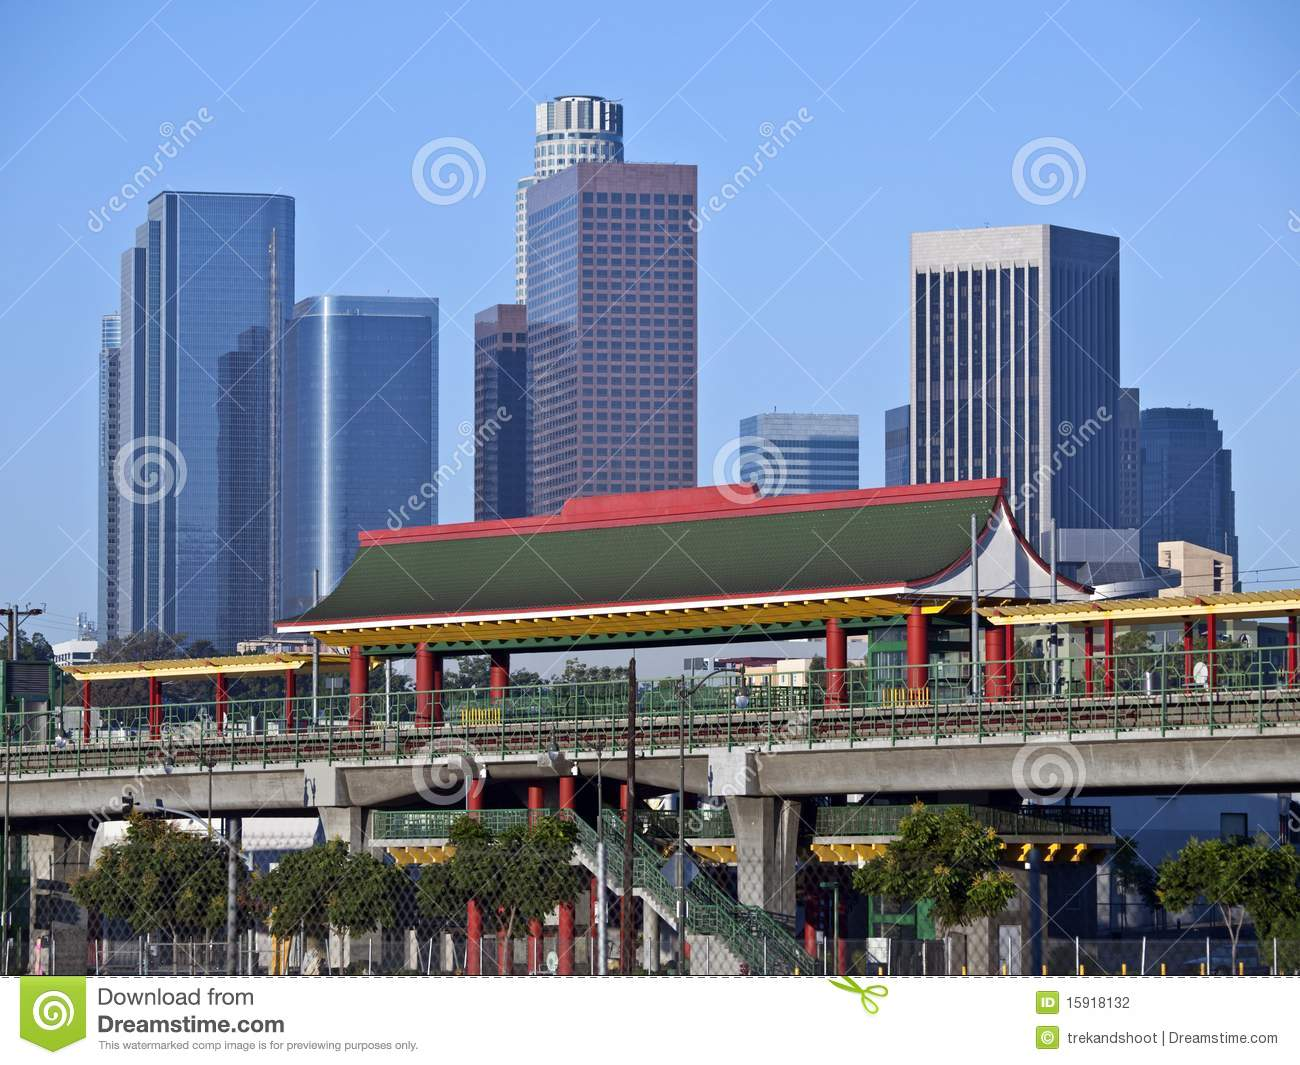 Chinatown Station In Los Angeles Stock Photo Image Of Train Travel 15918132